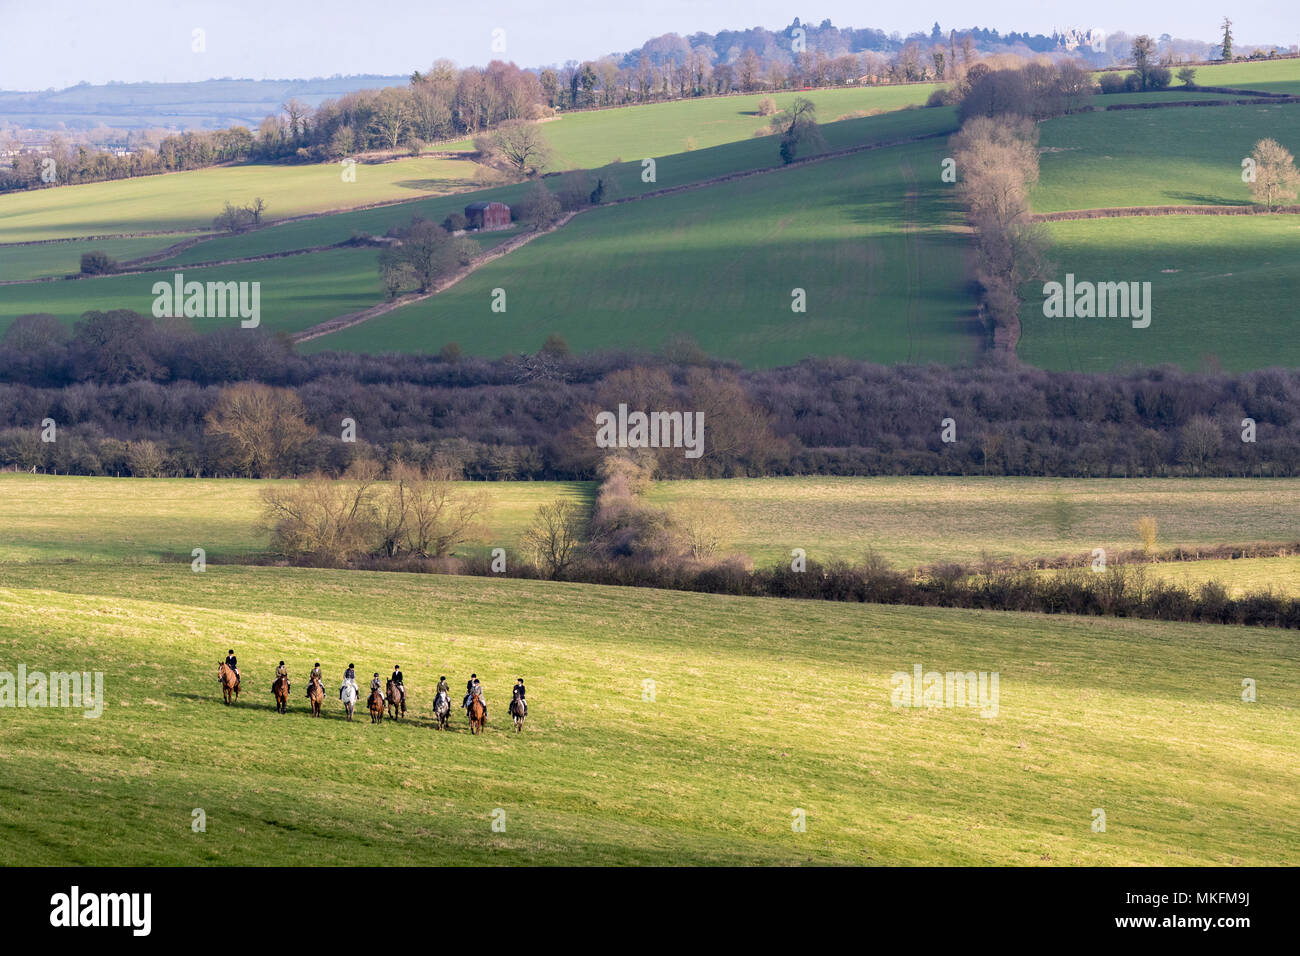 Fox hunting, Riders in the British countryside, England, Winter - Stock Image